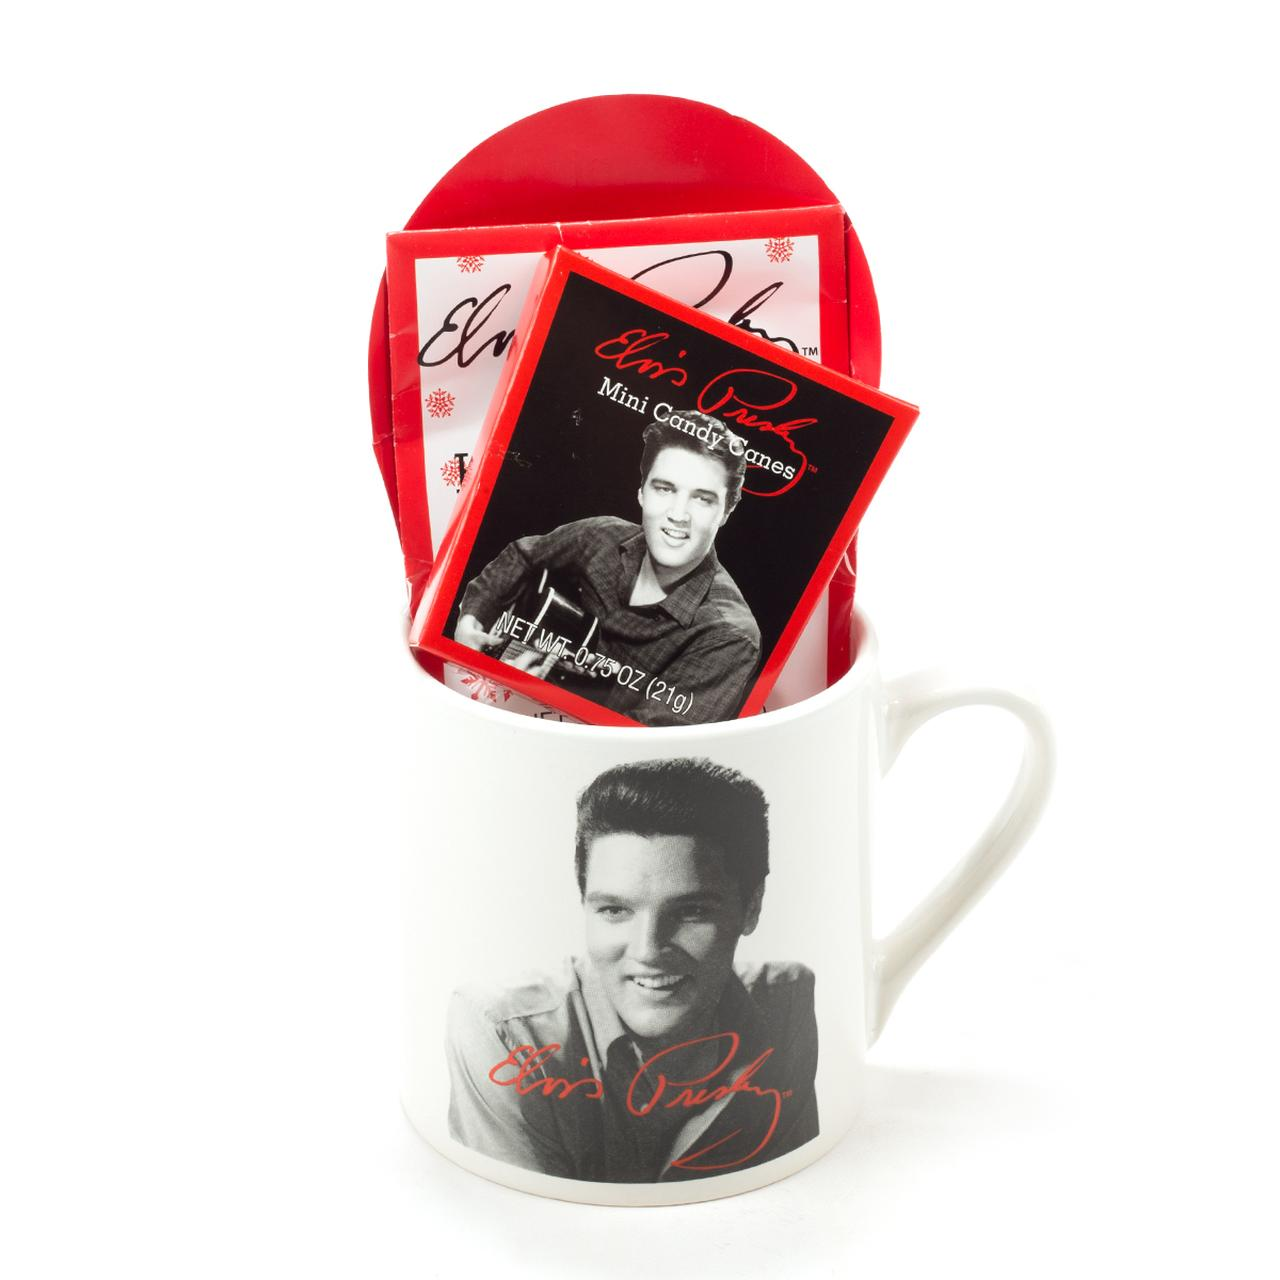 Elvis Presley Gift Set 1 Clambake Double Trouble Elvis on Tour Spinout Movie free download HD 720p